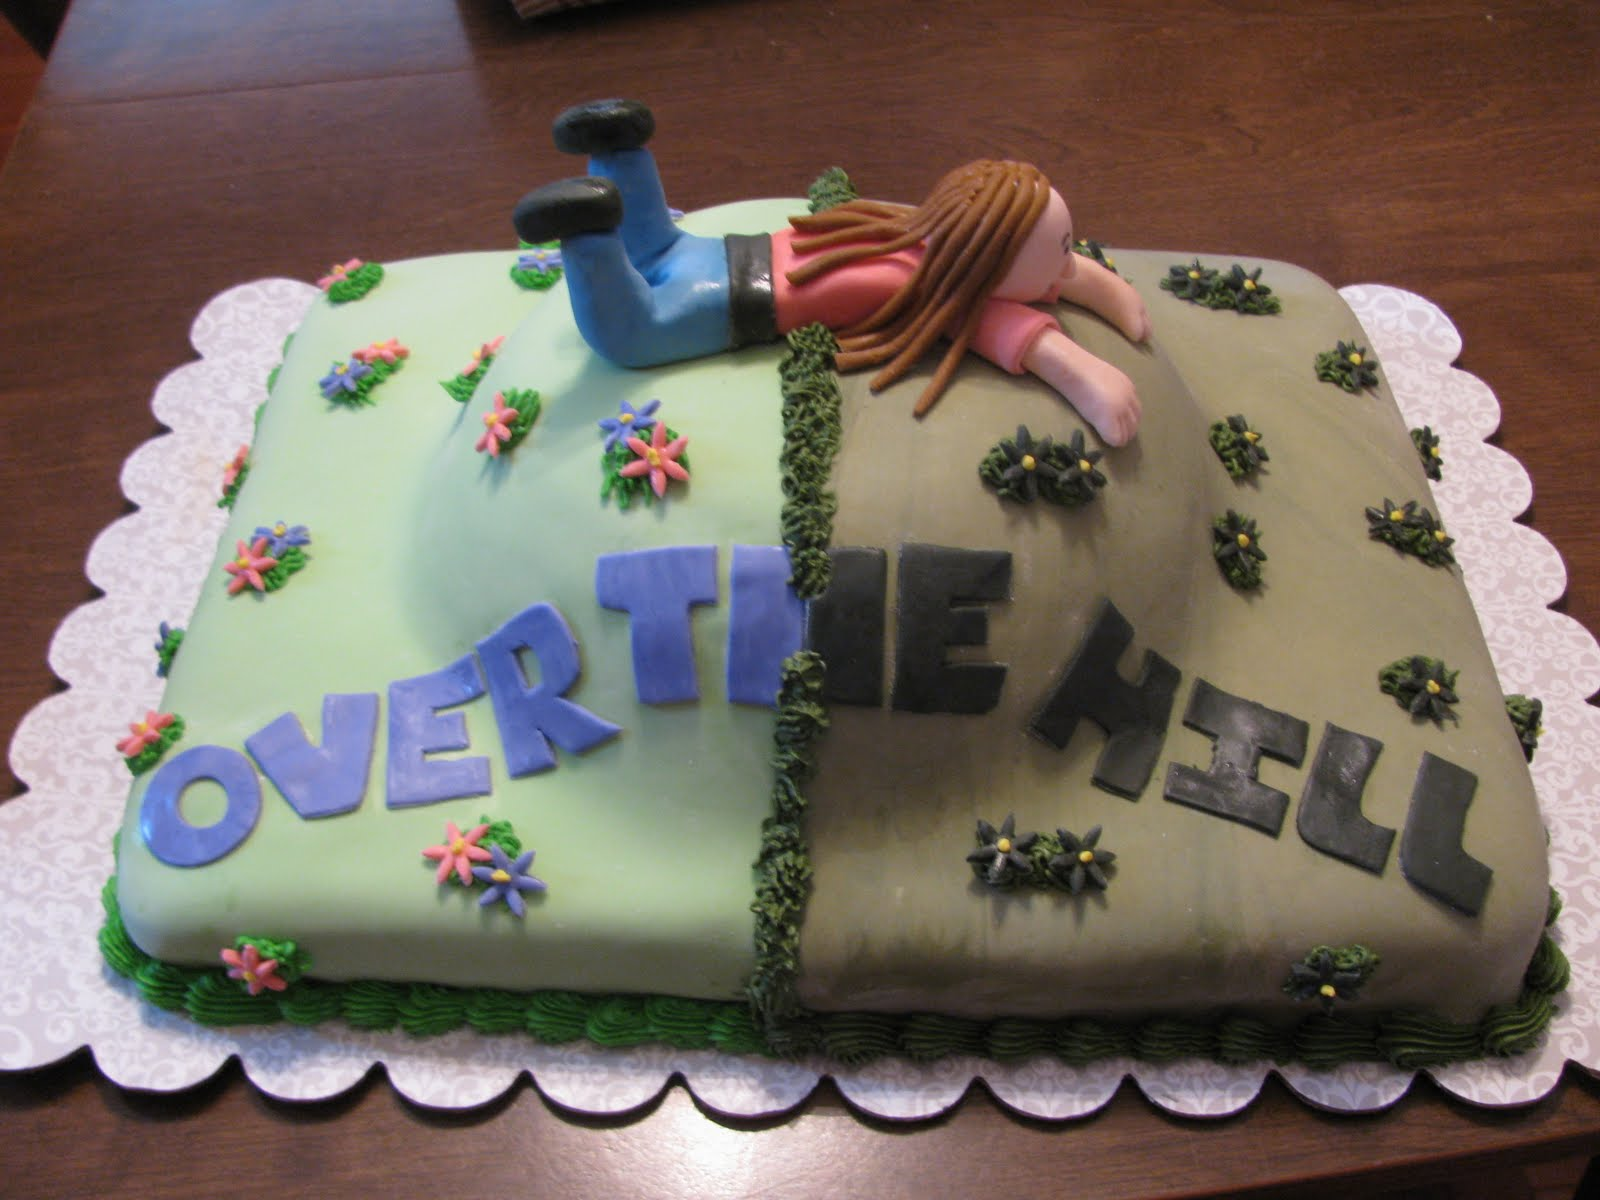 Astounding 12 Homemade Birthday Cakes Over The Hill Photo Over The Hill Funny Birthday Cards Online Aeocydamsfinfo